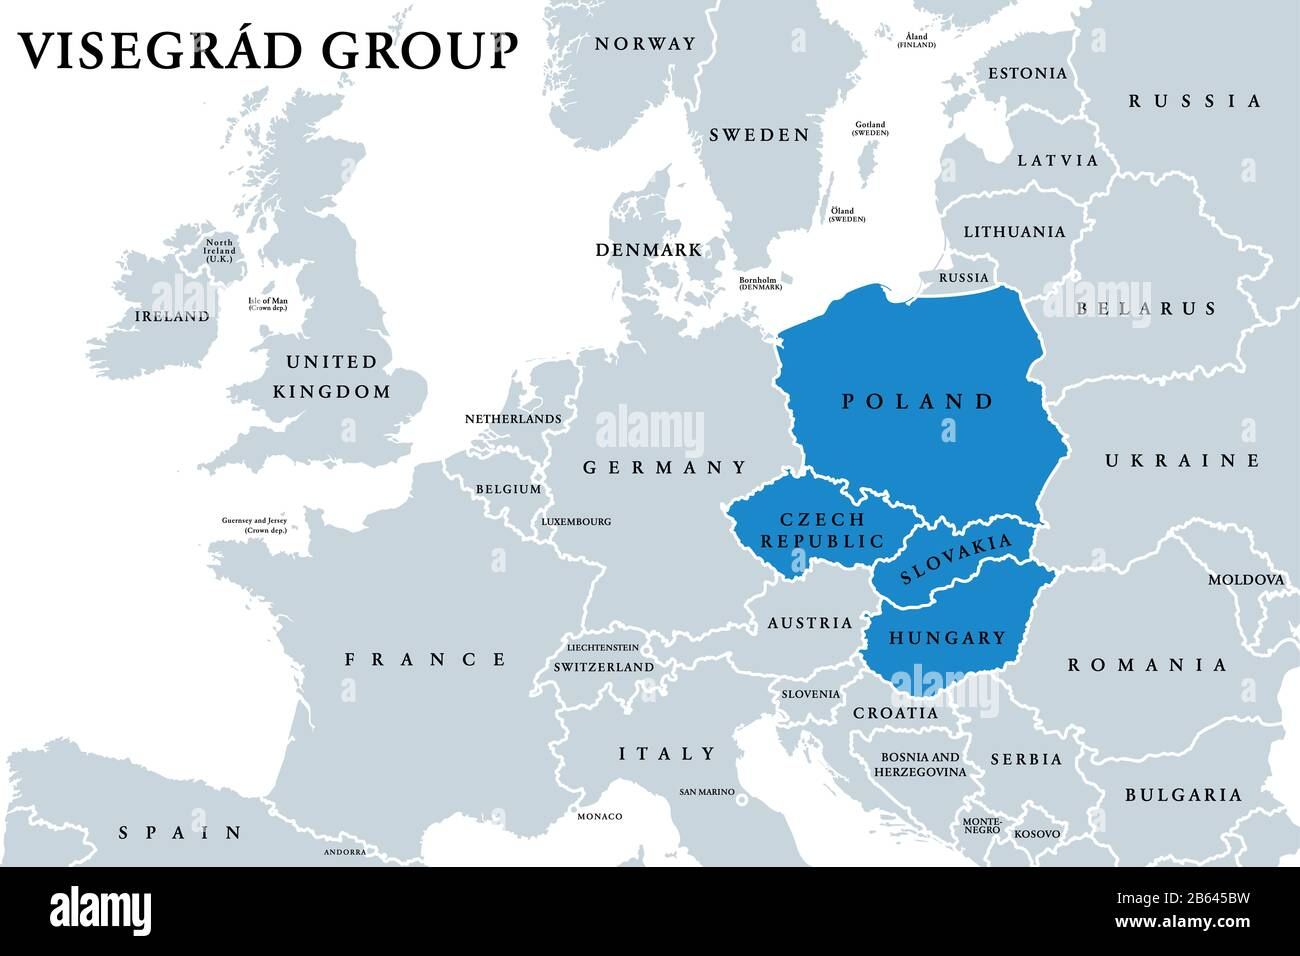 Picture of: Visegrad Group Member States Political Map Visegrad Four V4 Alliance Of Central European Countries Czech Republic Hungary Poland And Slovakia Stock Photo Alamy